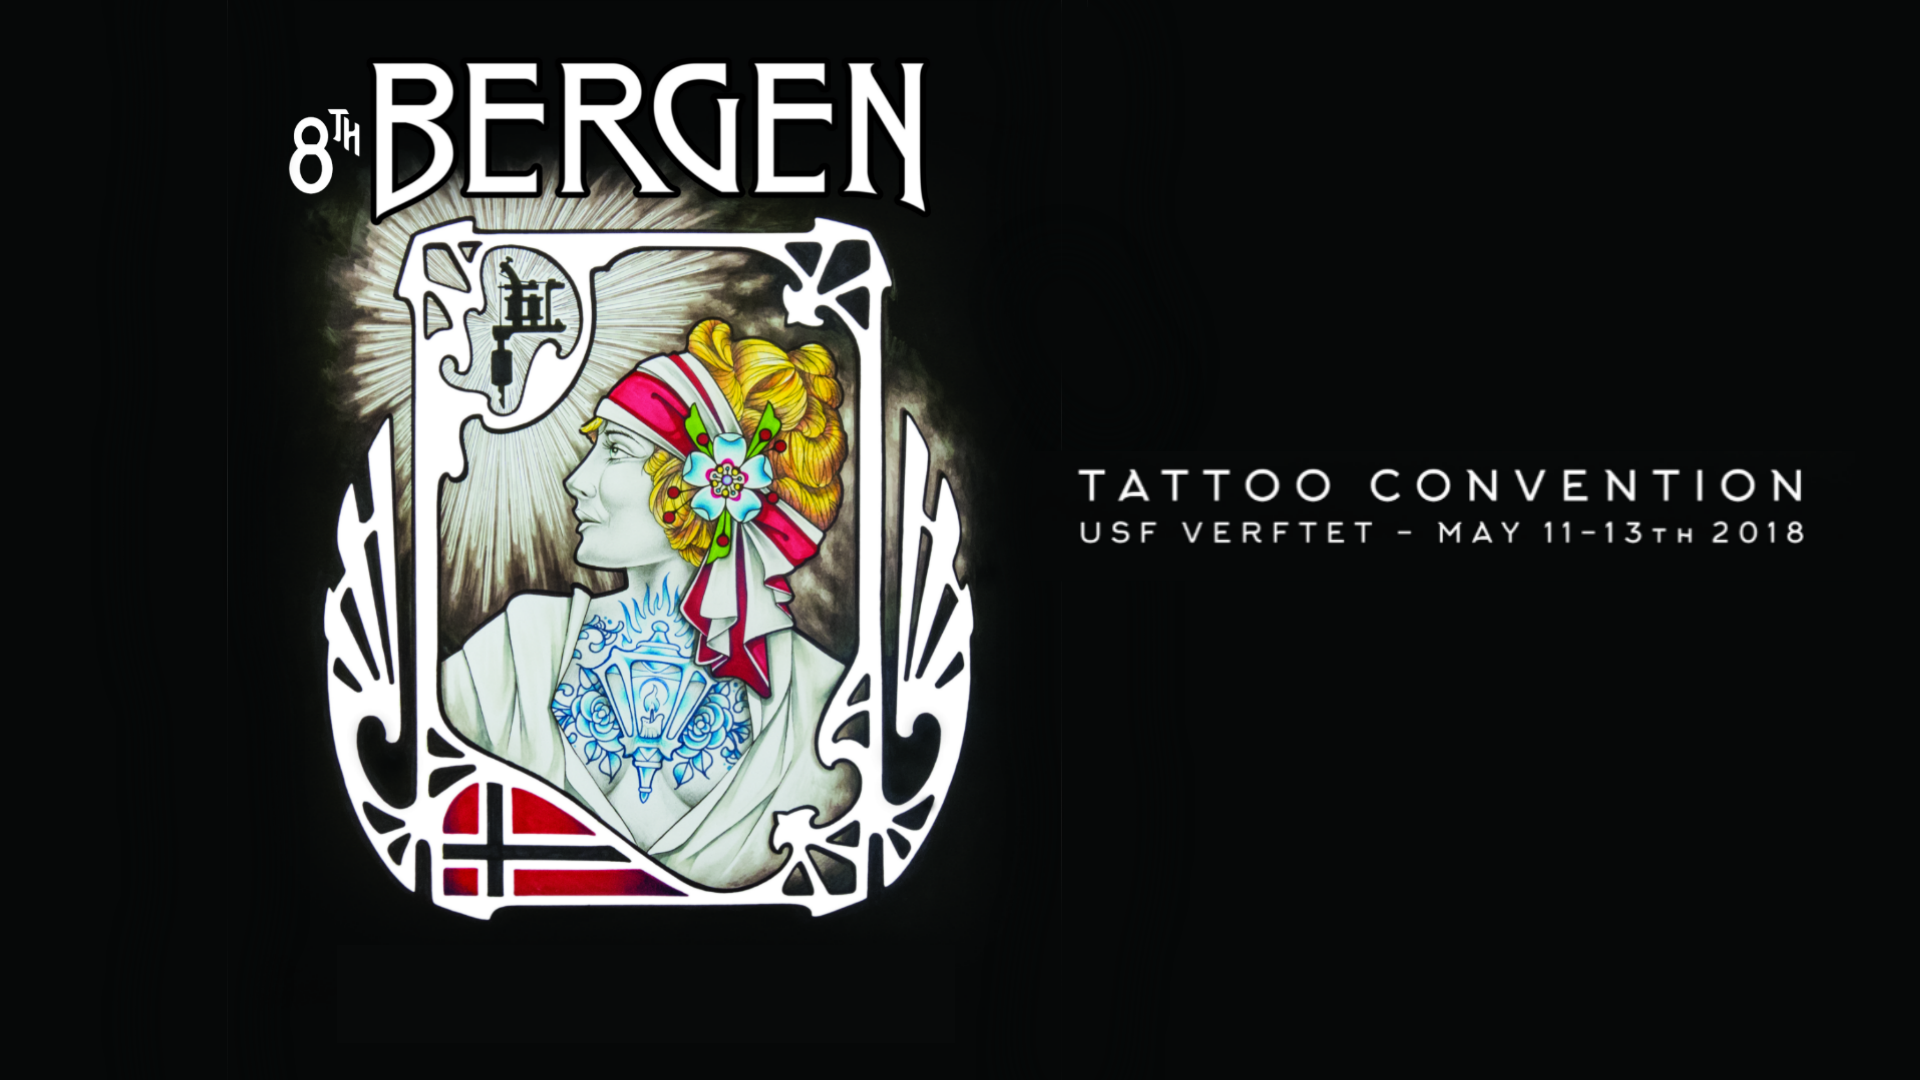 Bergen Tattoo Convention USF